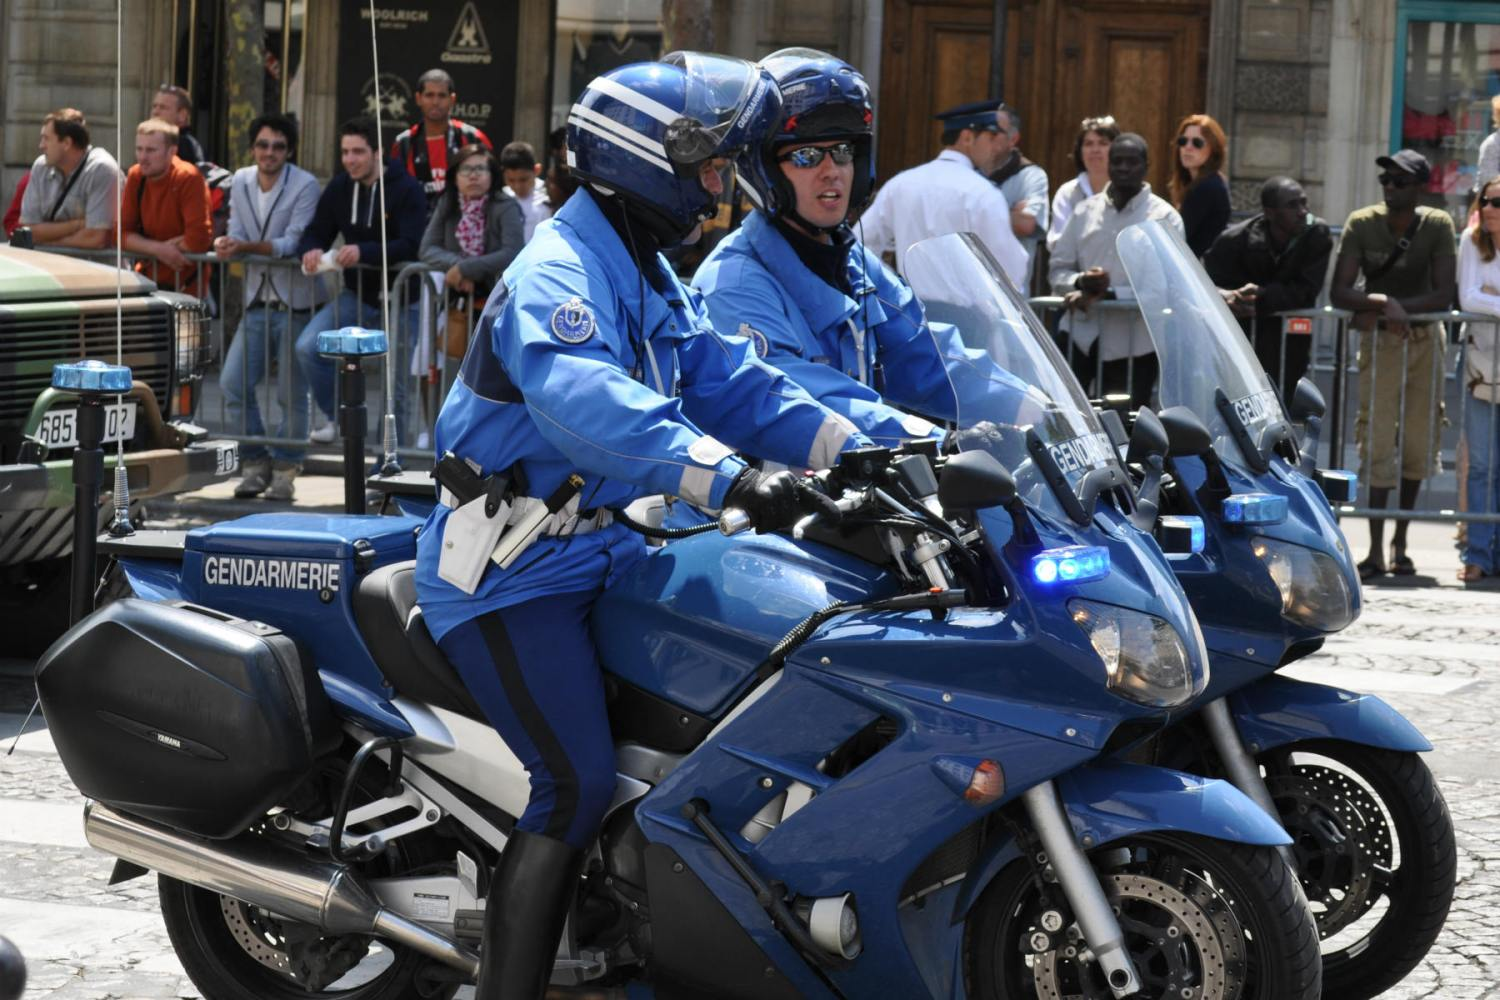 Fewer Brit drivers caught speeding in France over Le Mans weekend